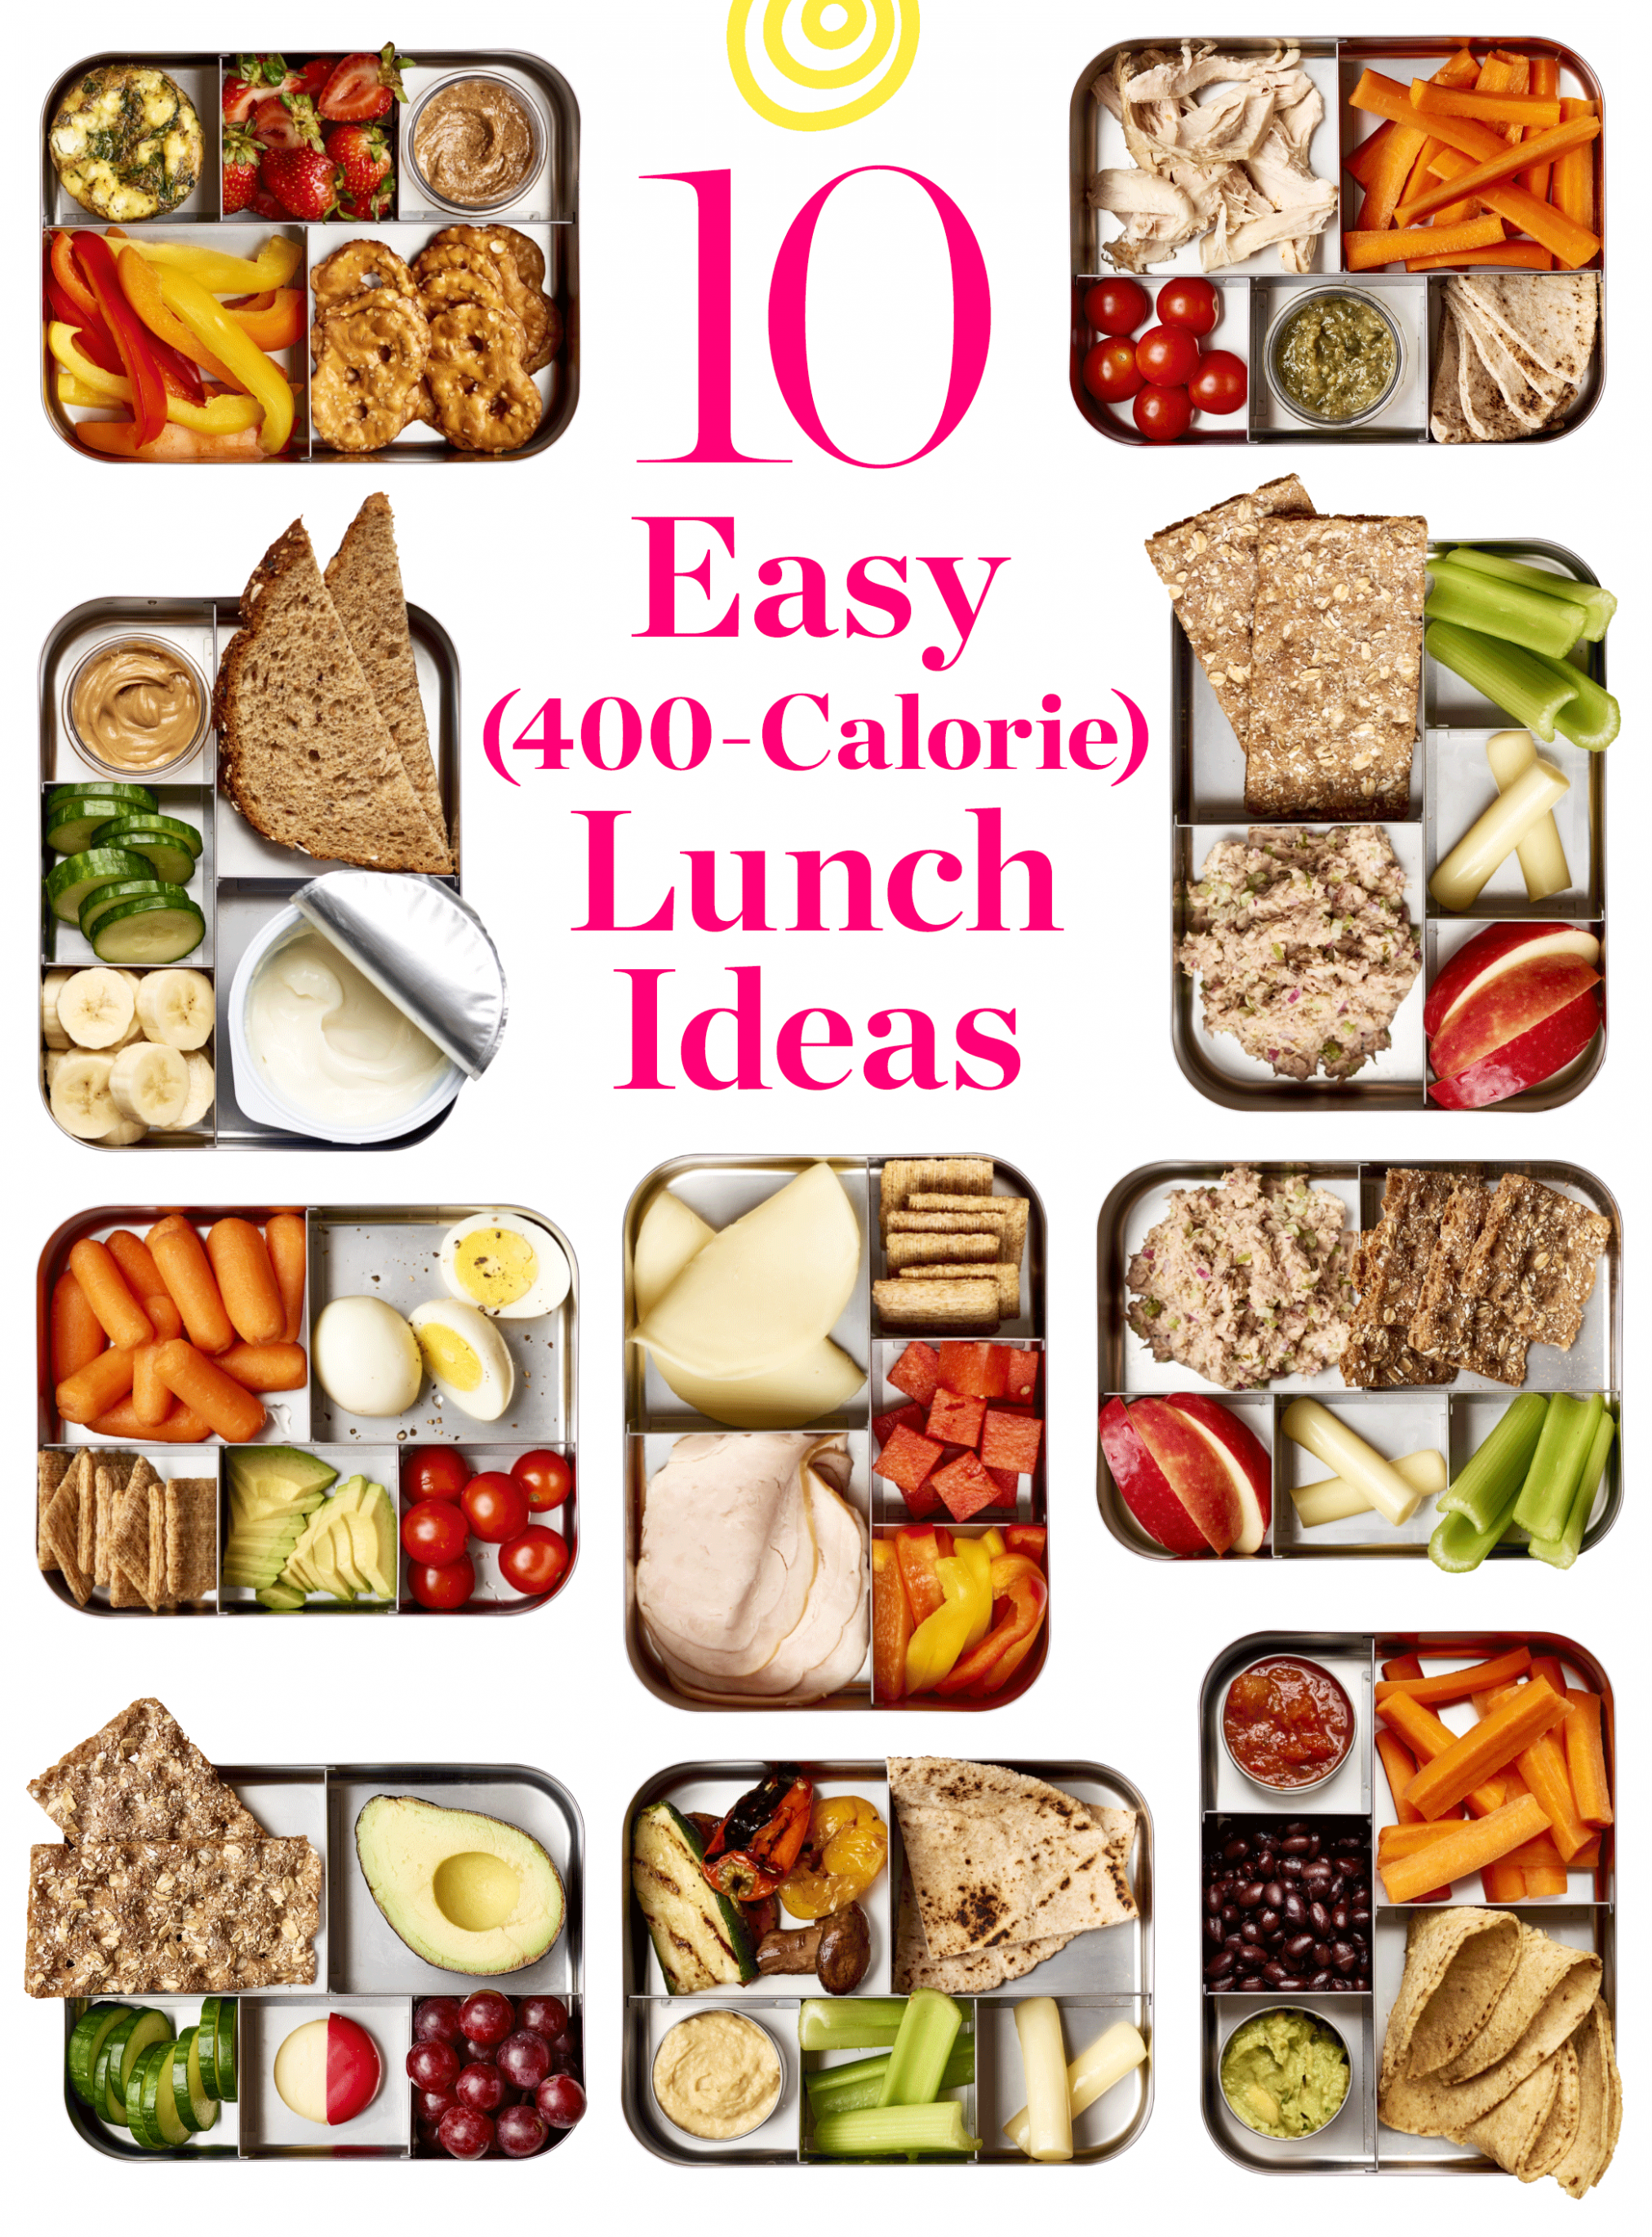 11 Easy Lunch Ideas Under 11 Calories | Kitchn